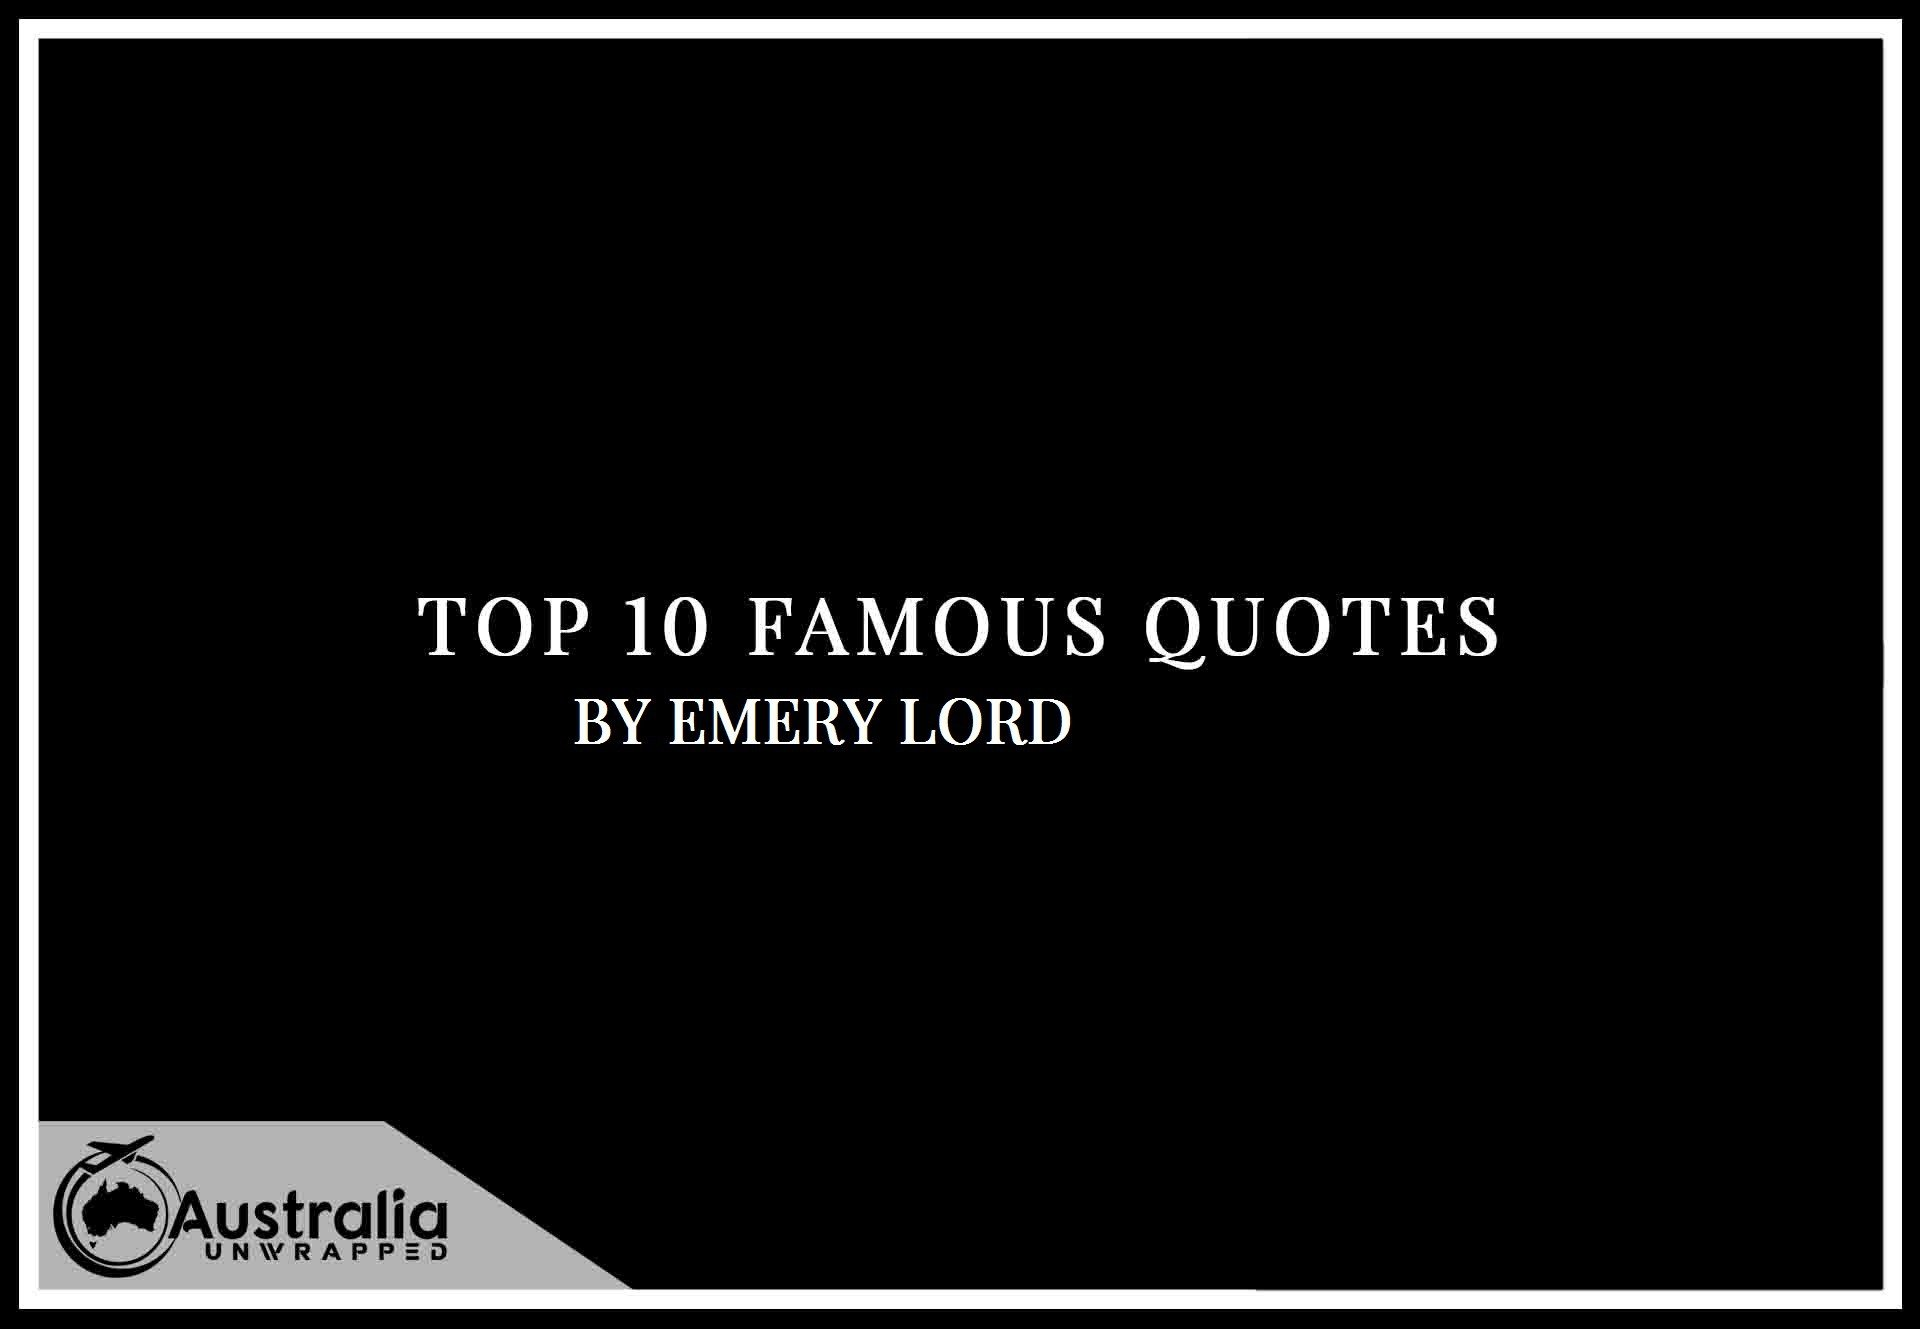 Emery Lord's Top 10 Popular and Famous Quotes